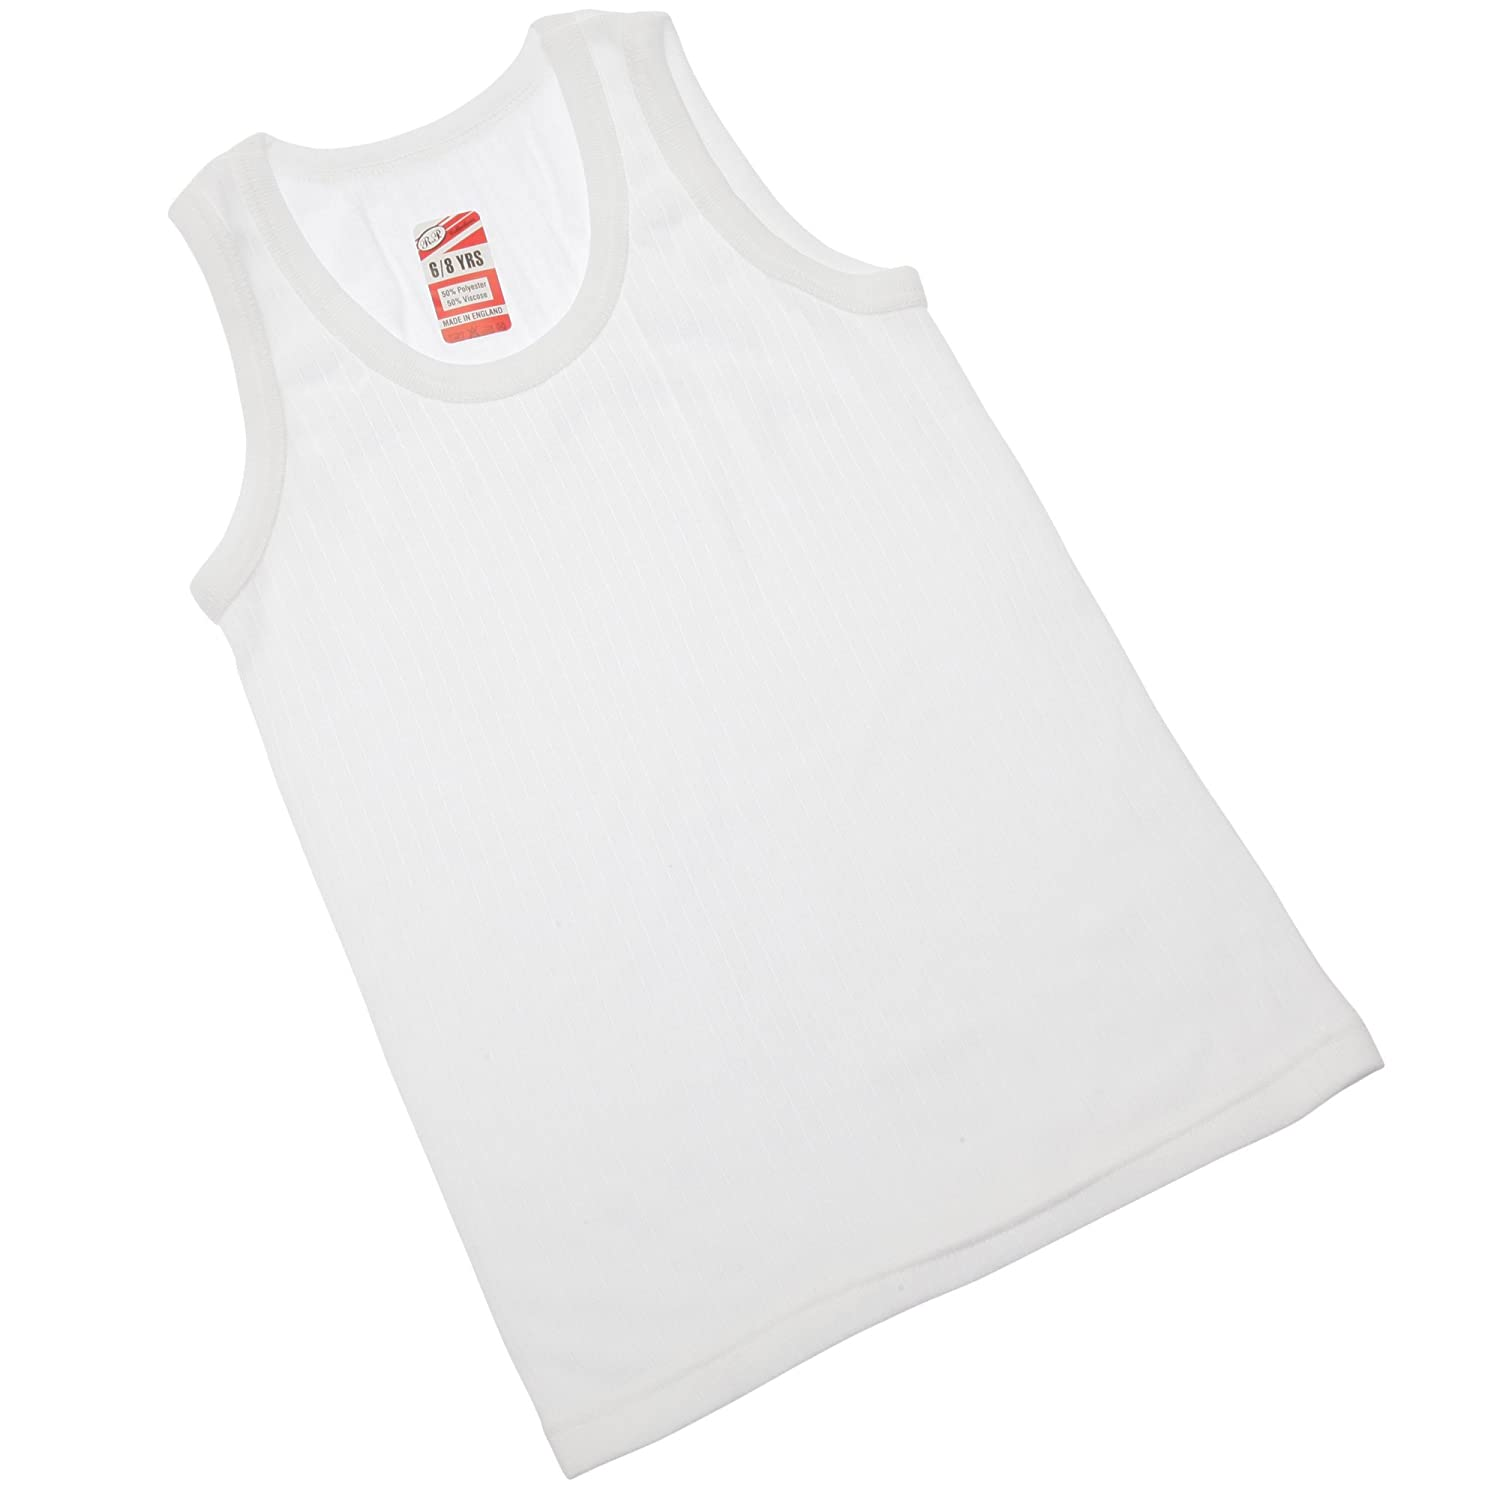 Universal Textiles Boys Thermal Clothing Sleeveless Vest Polyviscose Range (British Made)